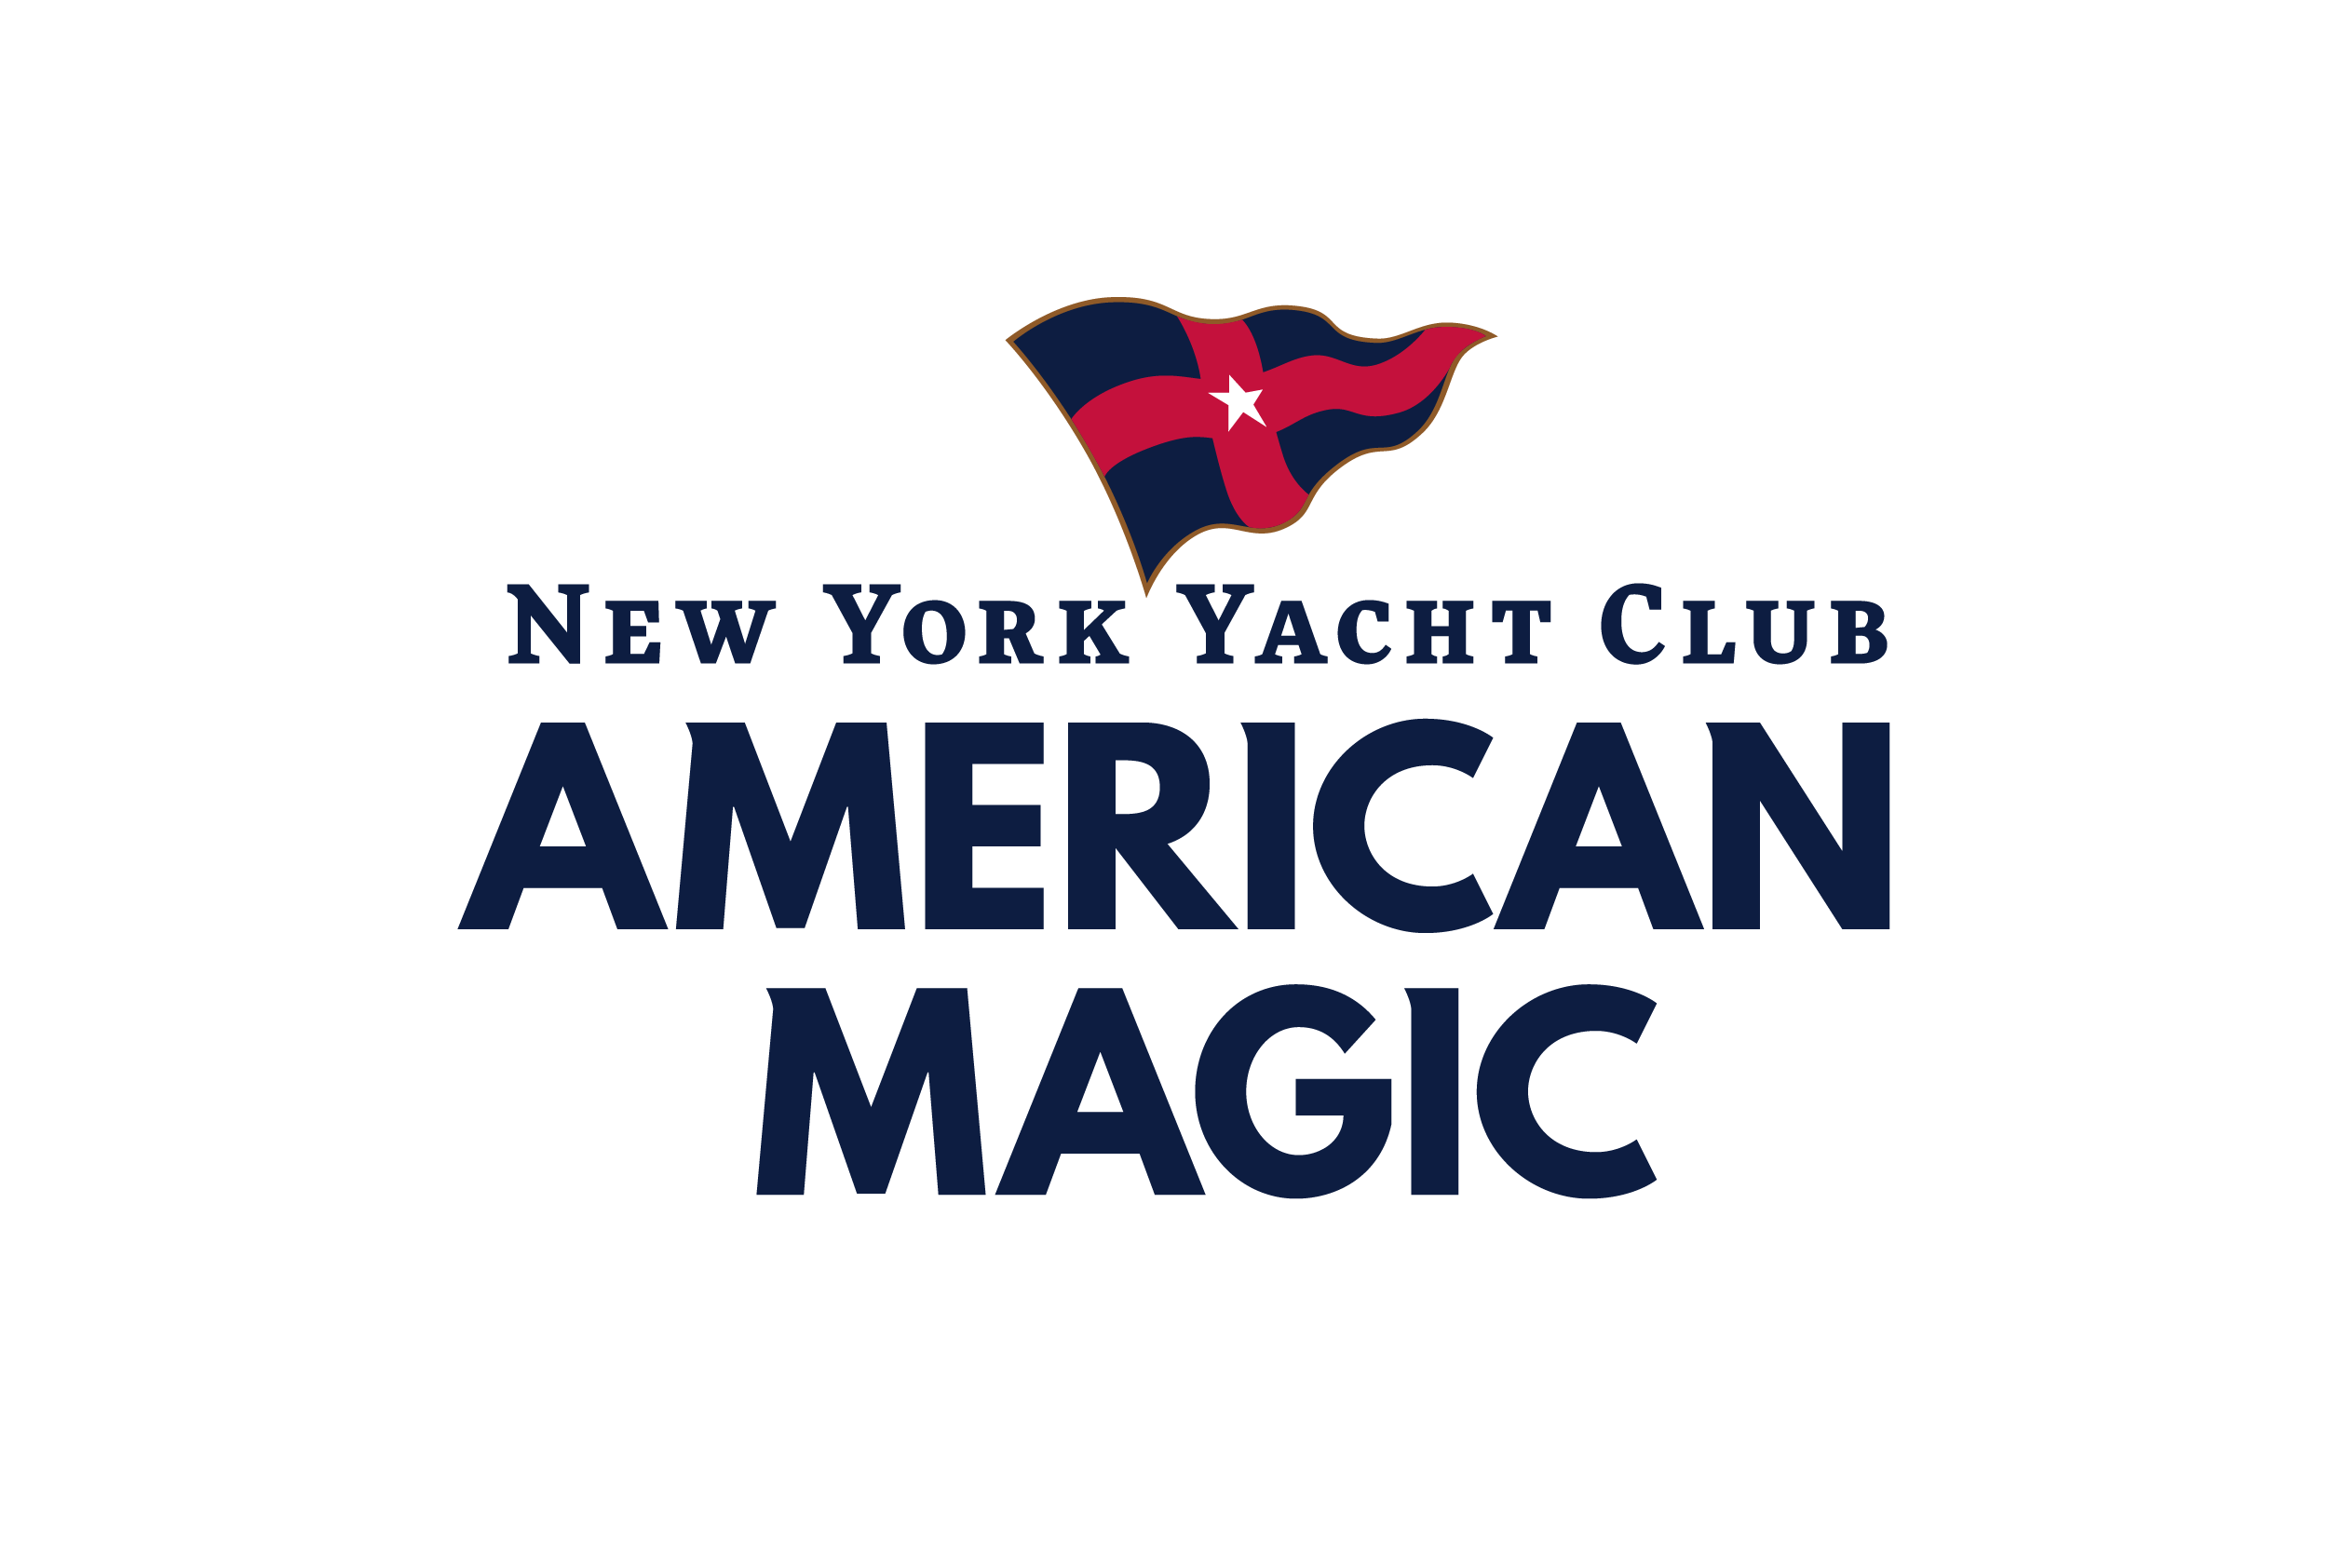 American Magic Team logo